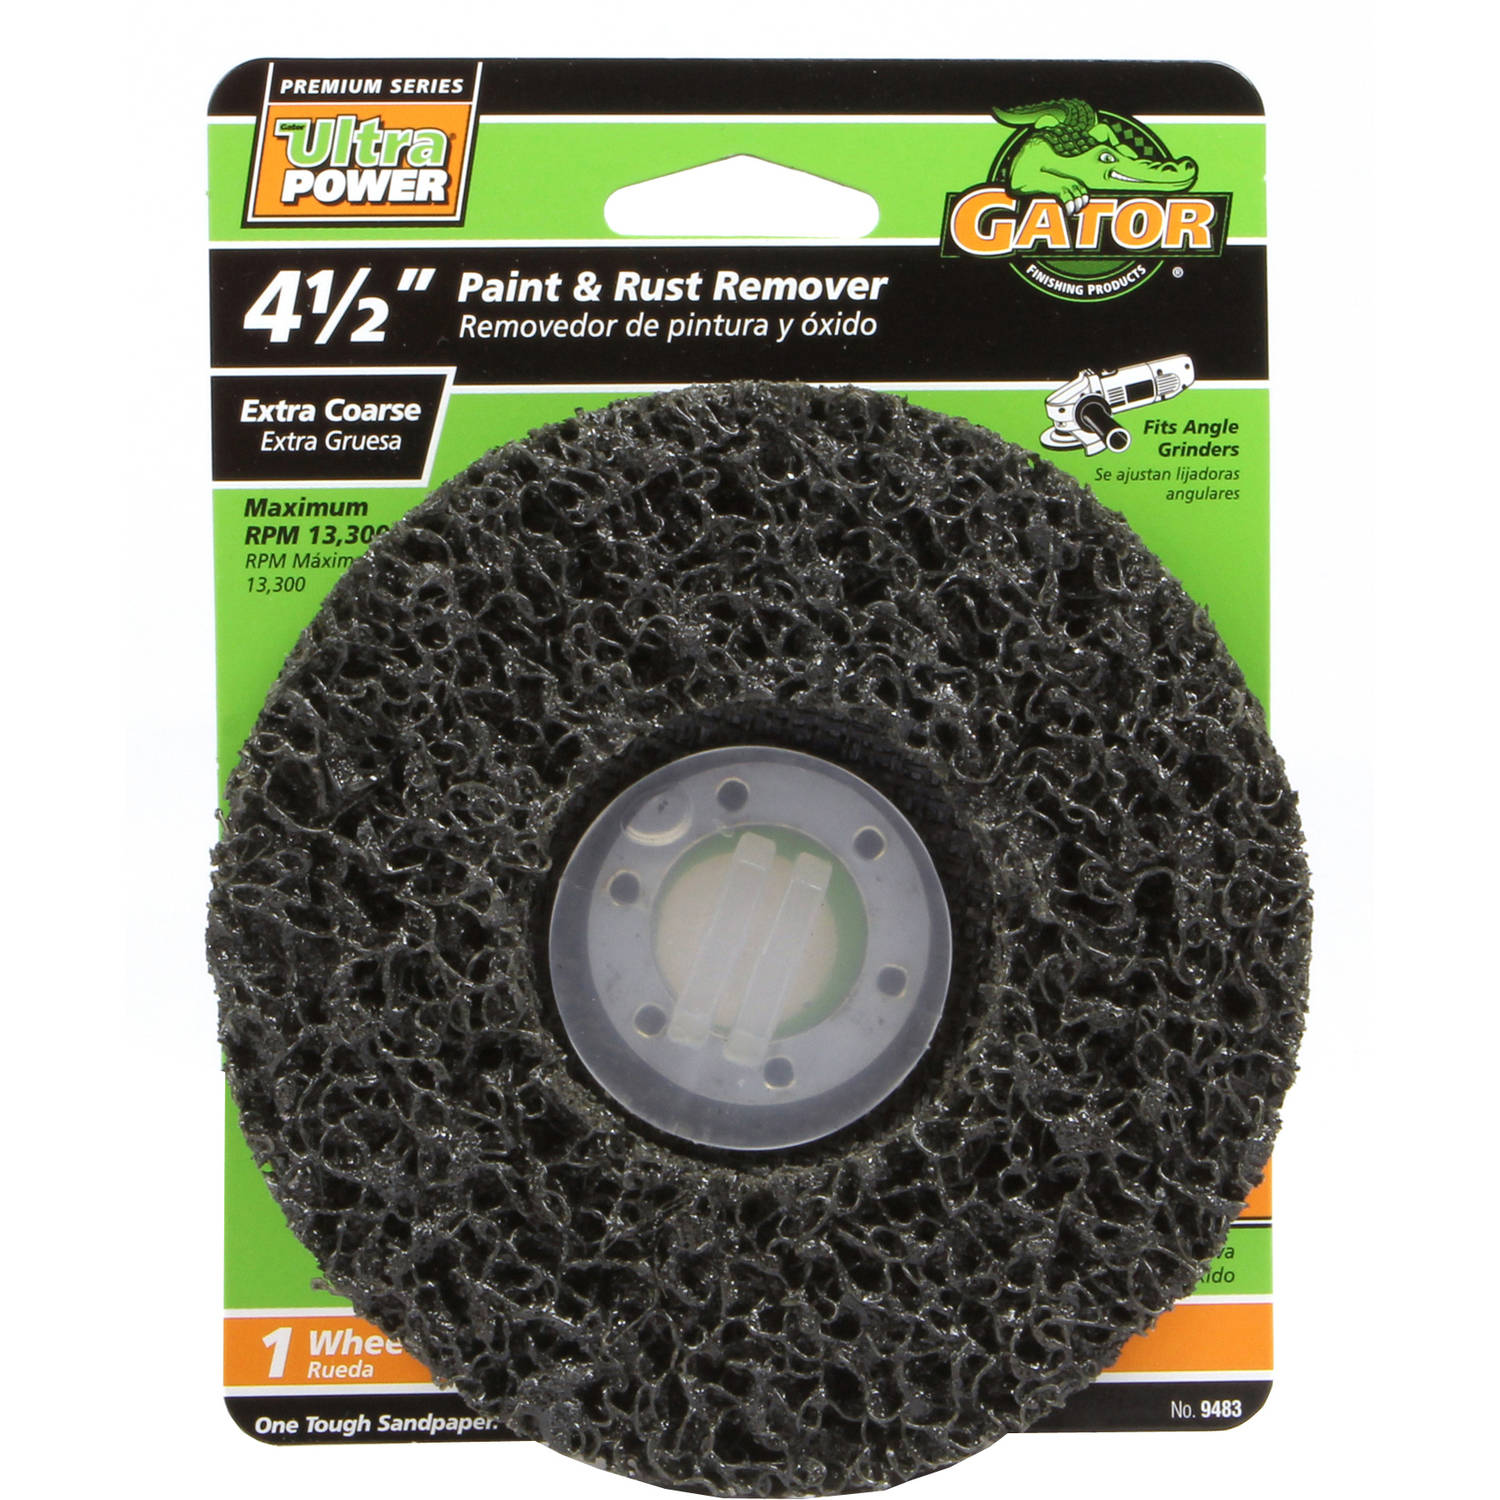 "Gator Grit 4.5"" Paint and Rust Stripper, Extra Coarse"